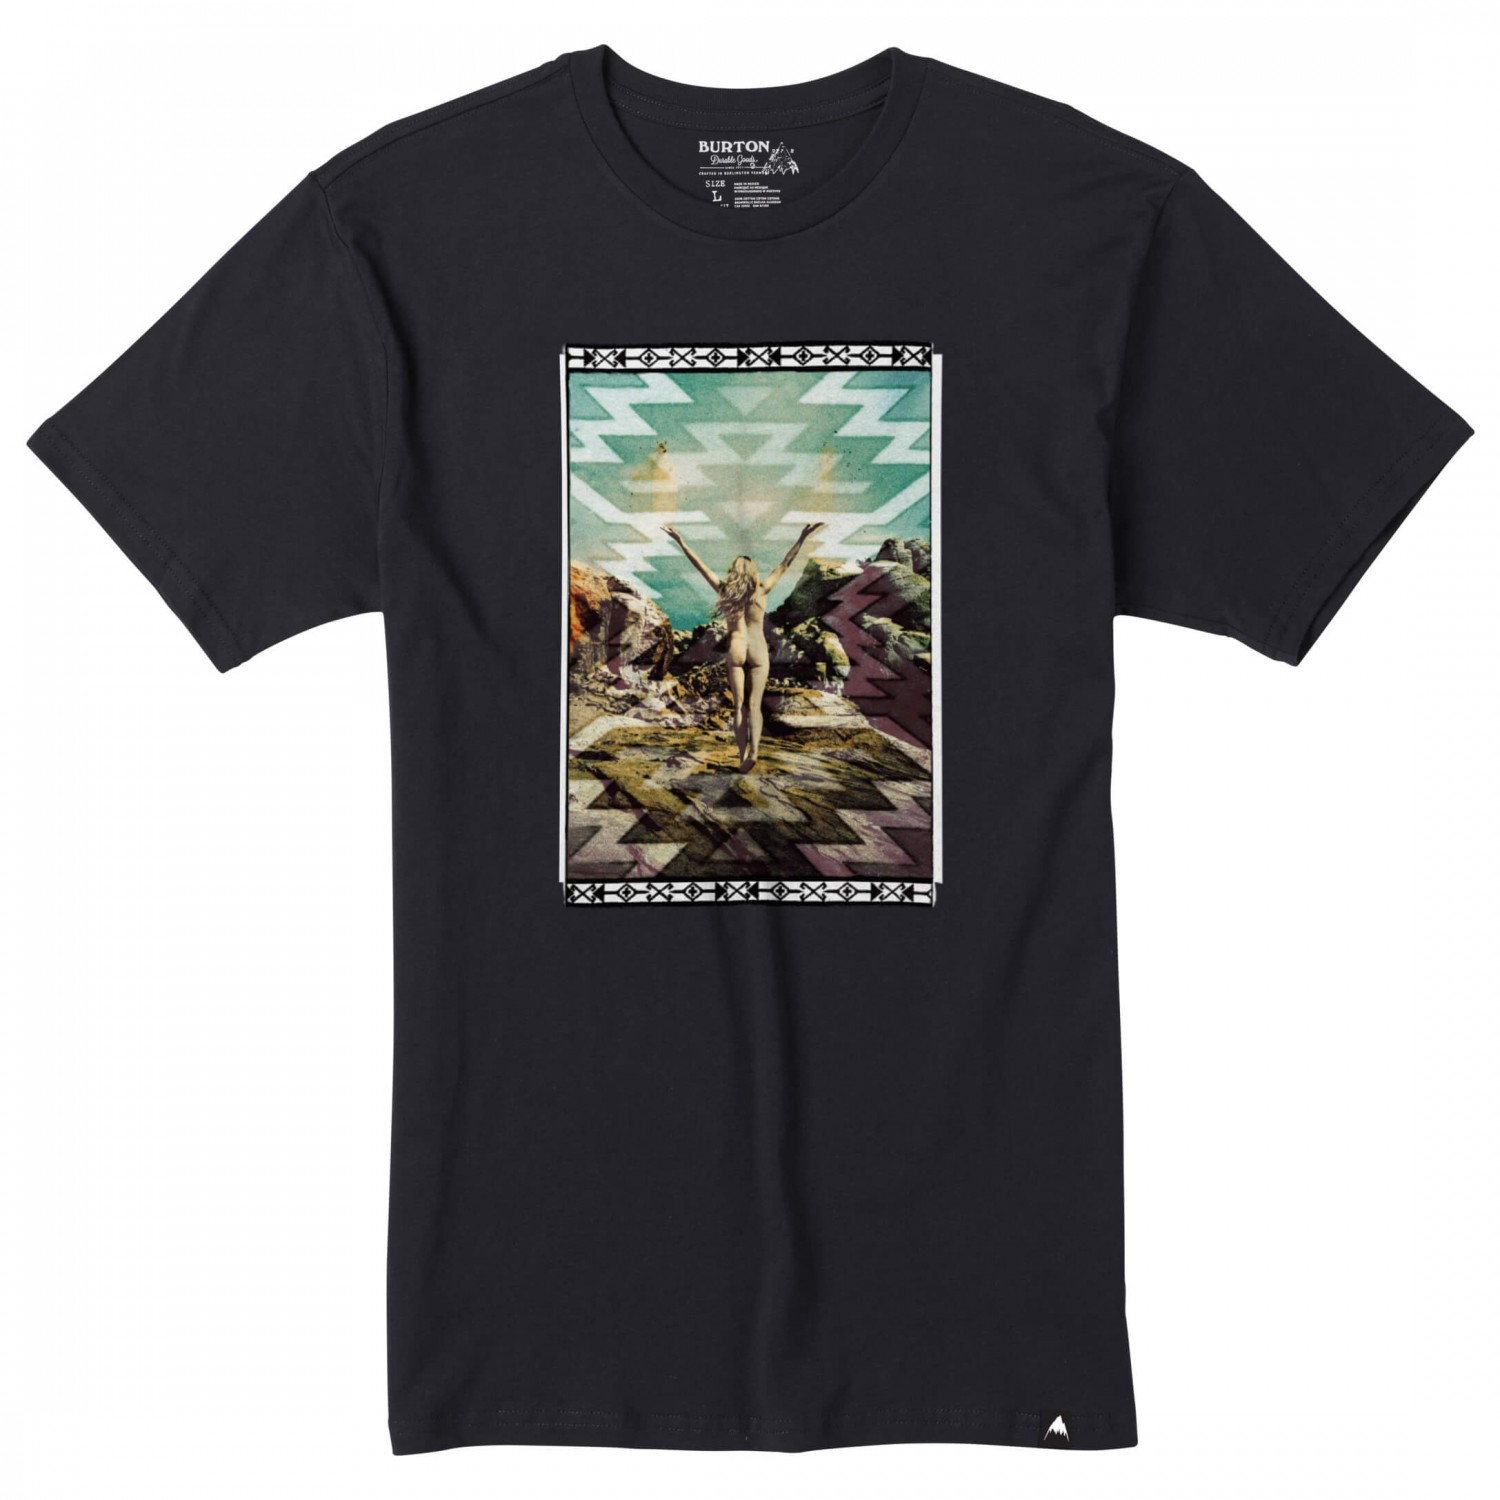 Burton the great outdoors s s tee t shirt men 39 s buy The great t shirt